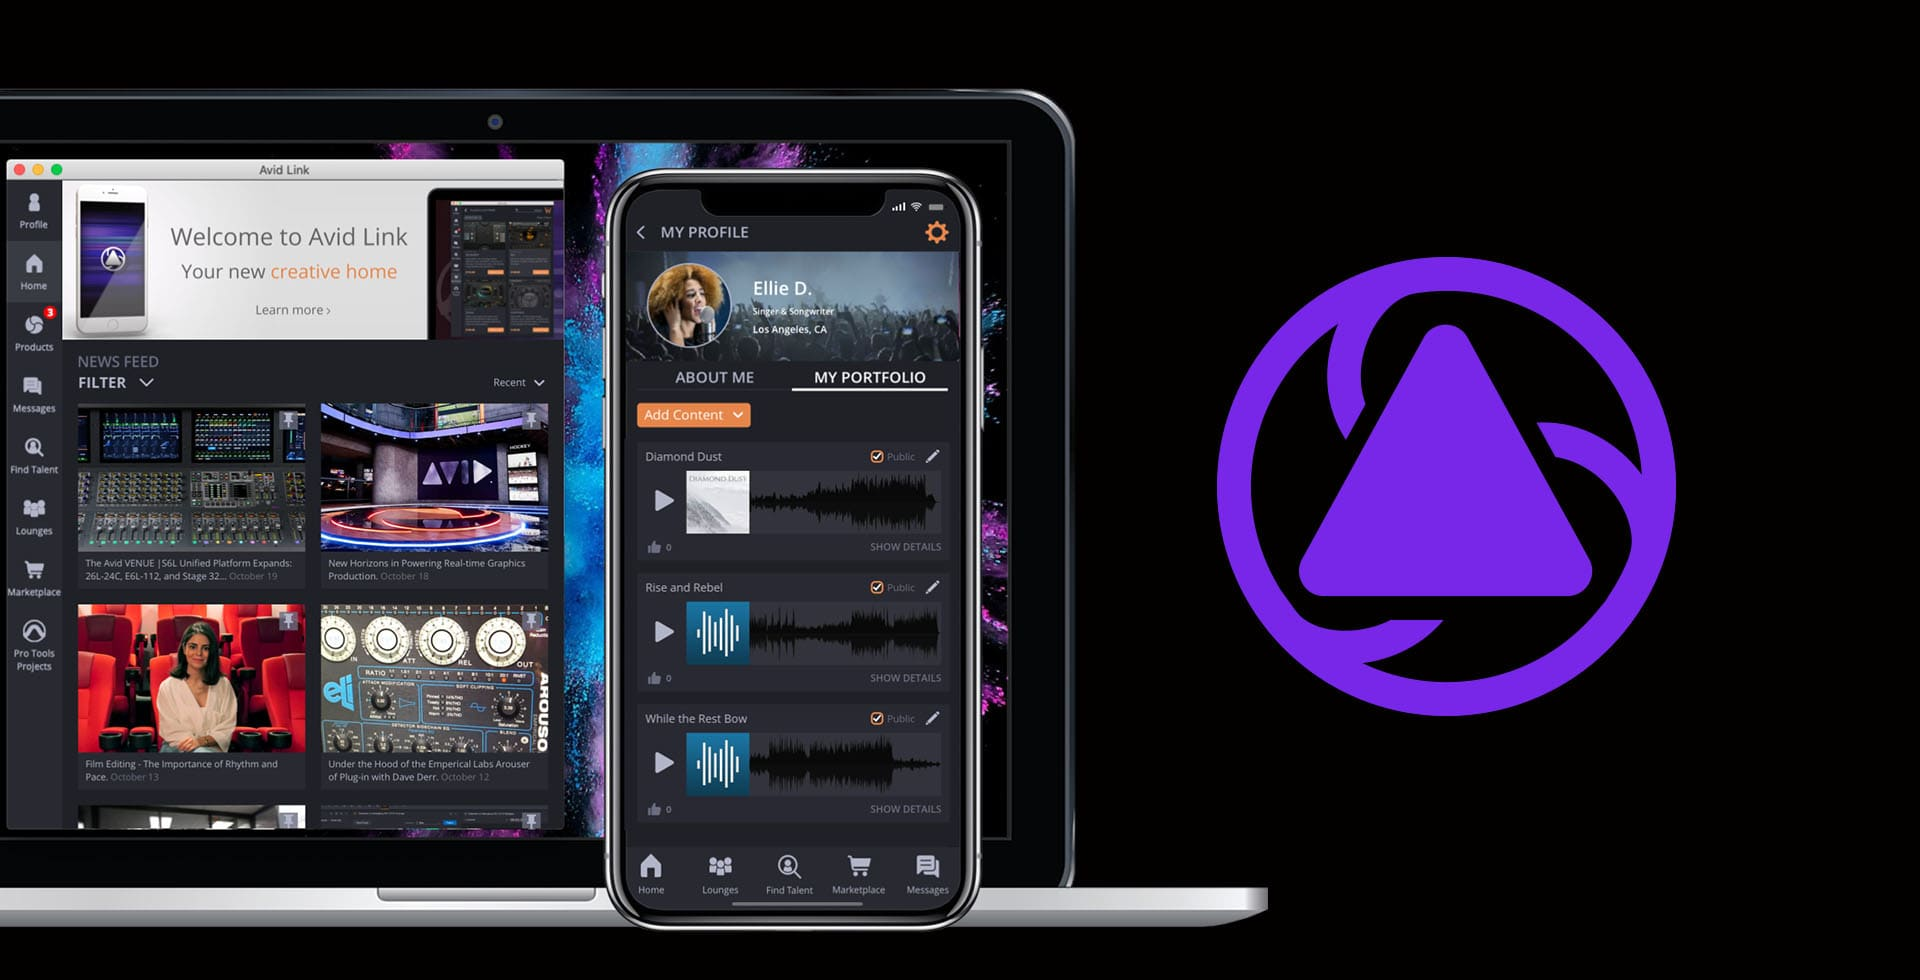 Smartphone and laptop with image of Avid Link free networking app next to purple logo